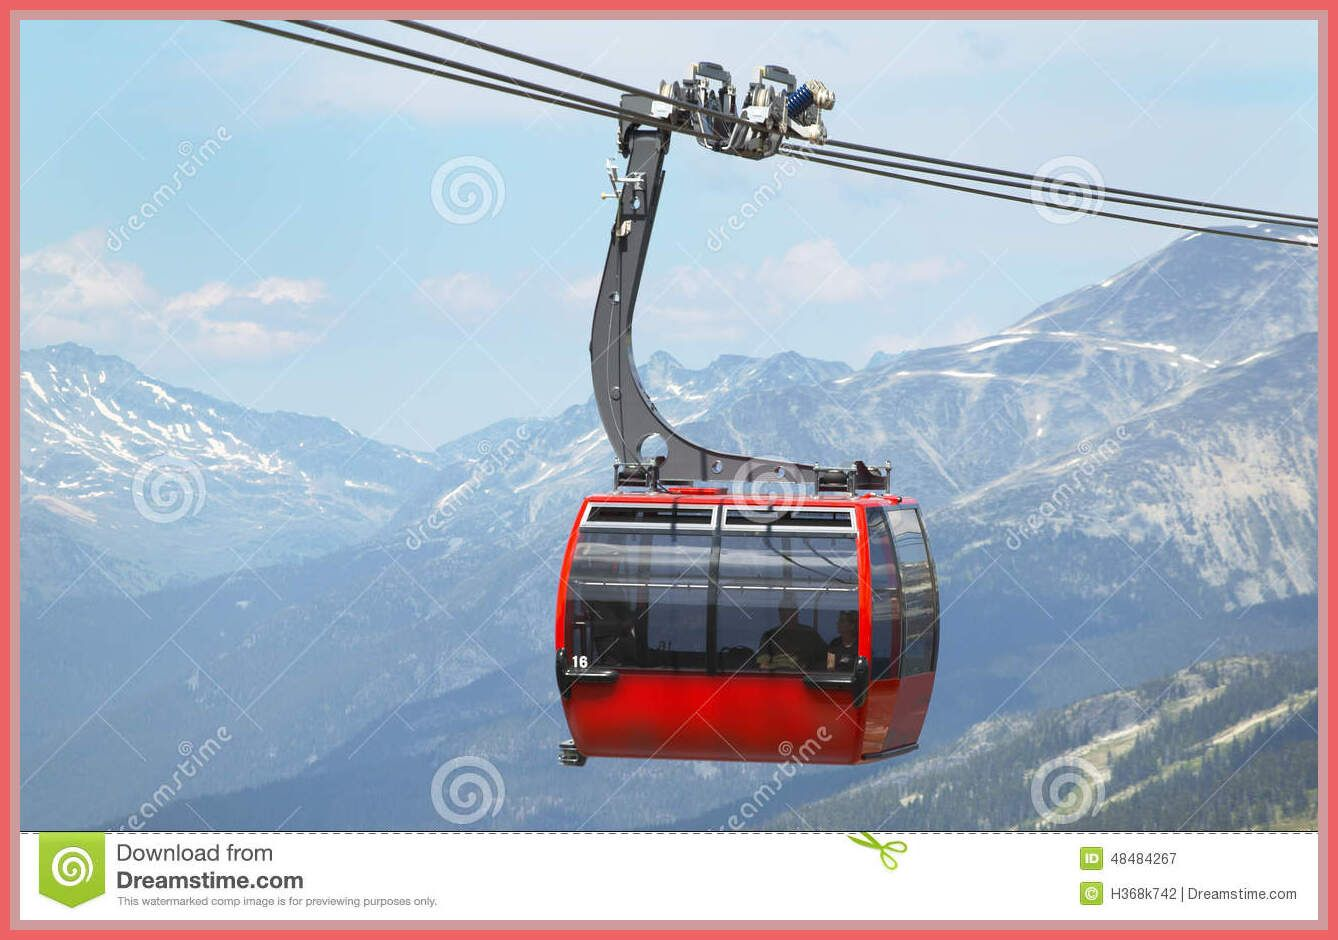 97 Reference Of Chair Lift Mountain In 2020 Chair Lift Beech Mountain Snowy Mountains